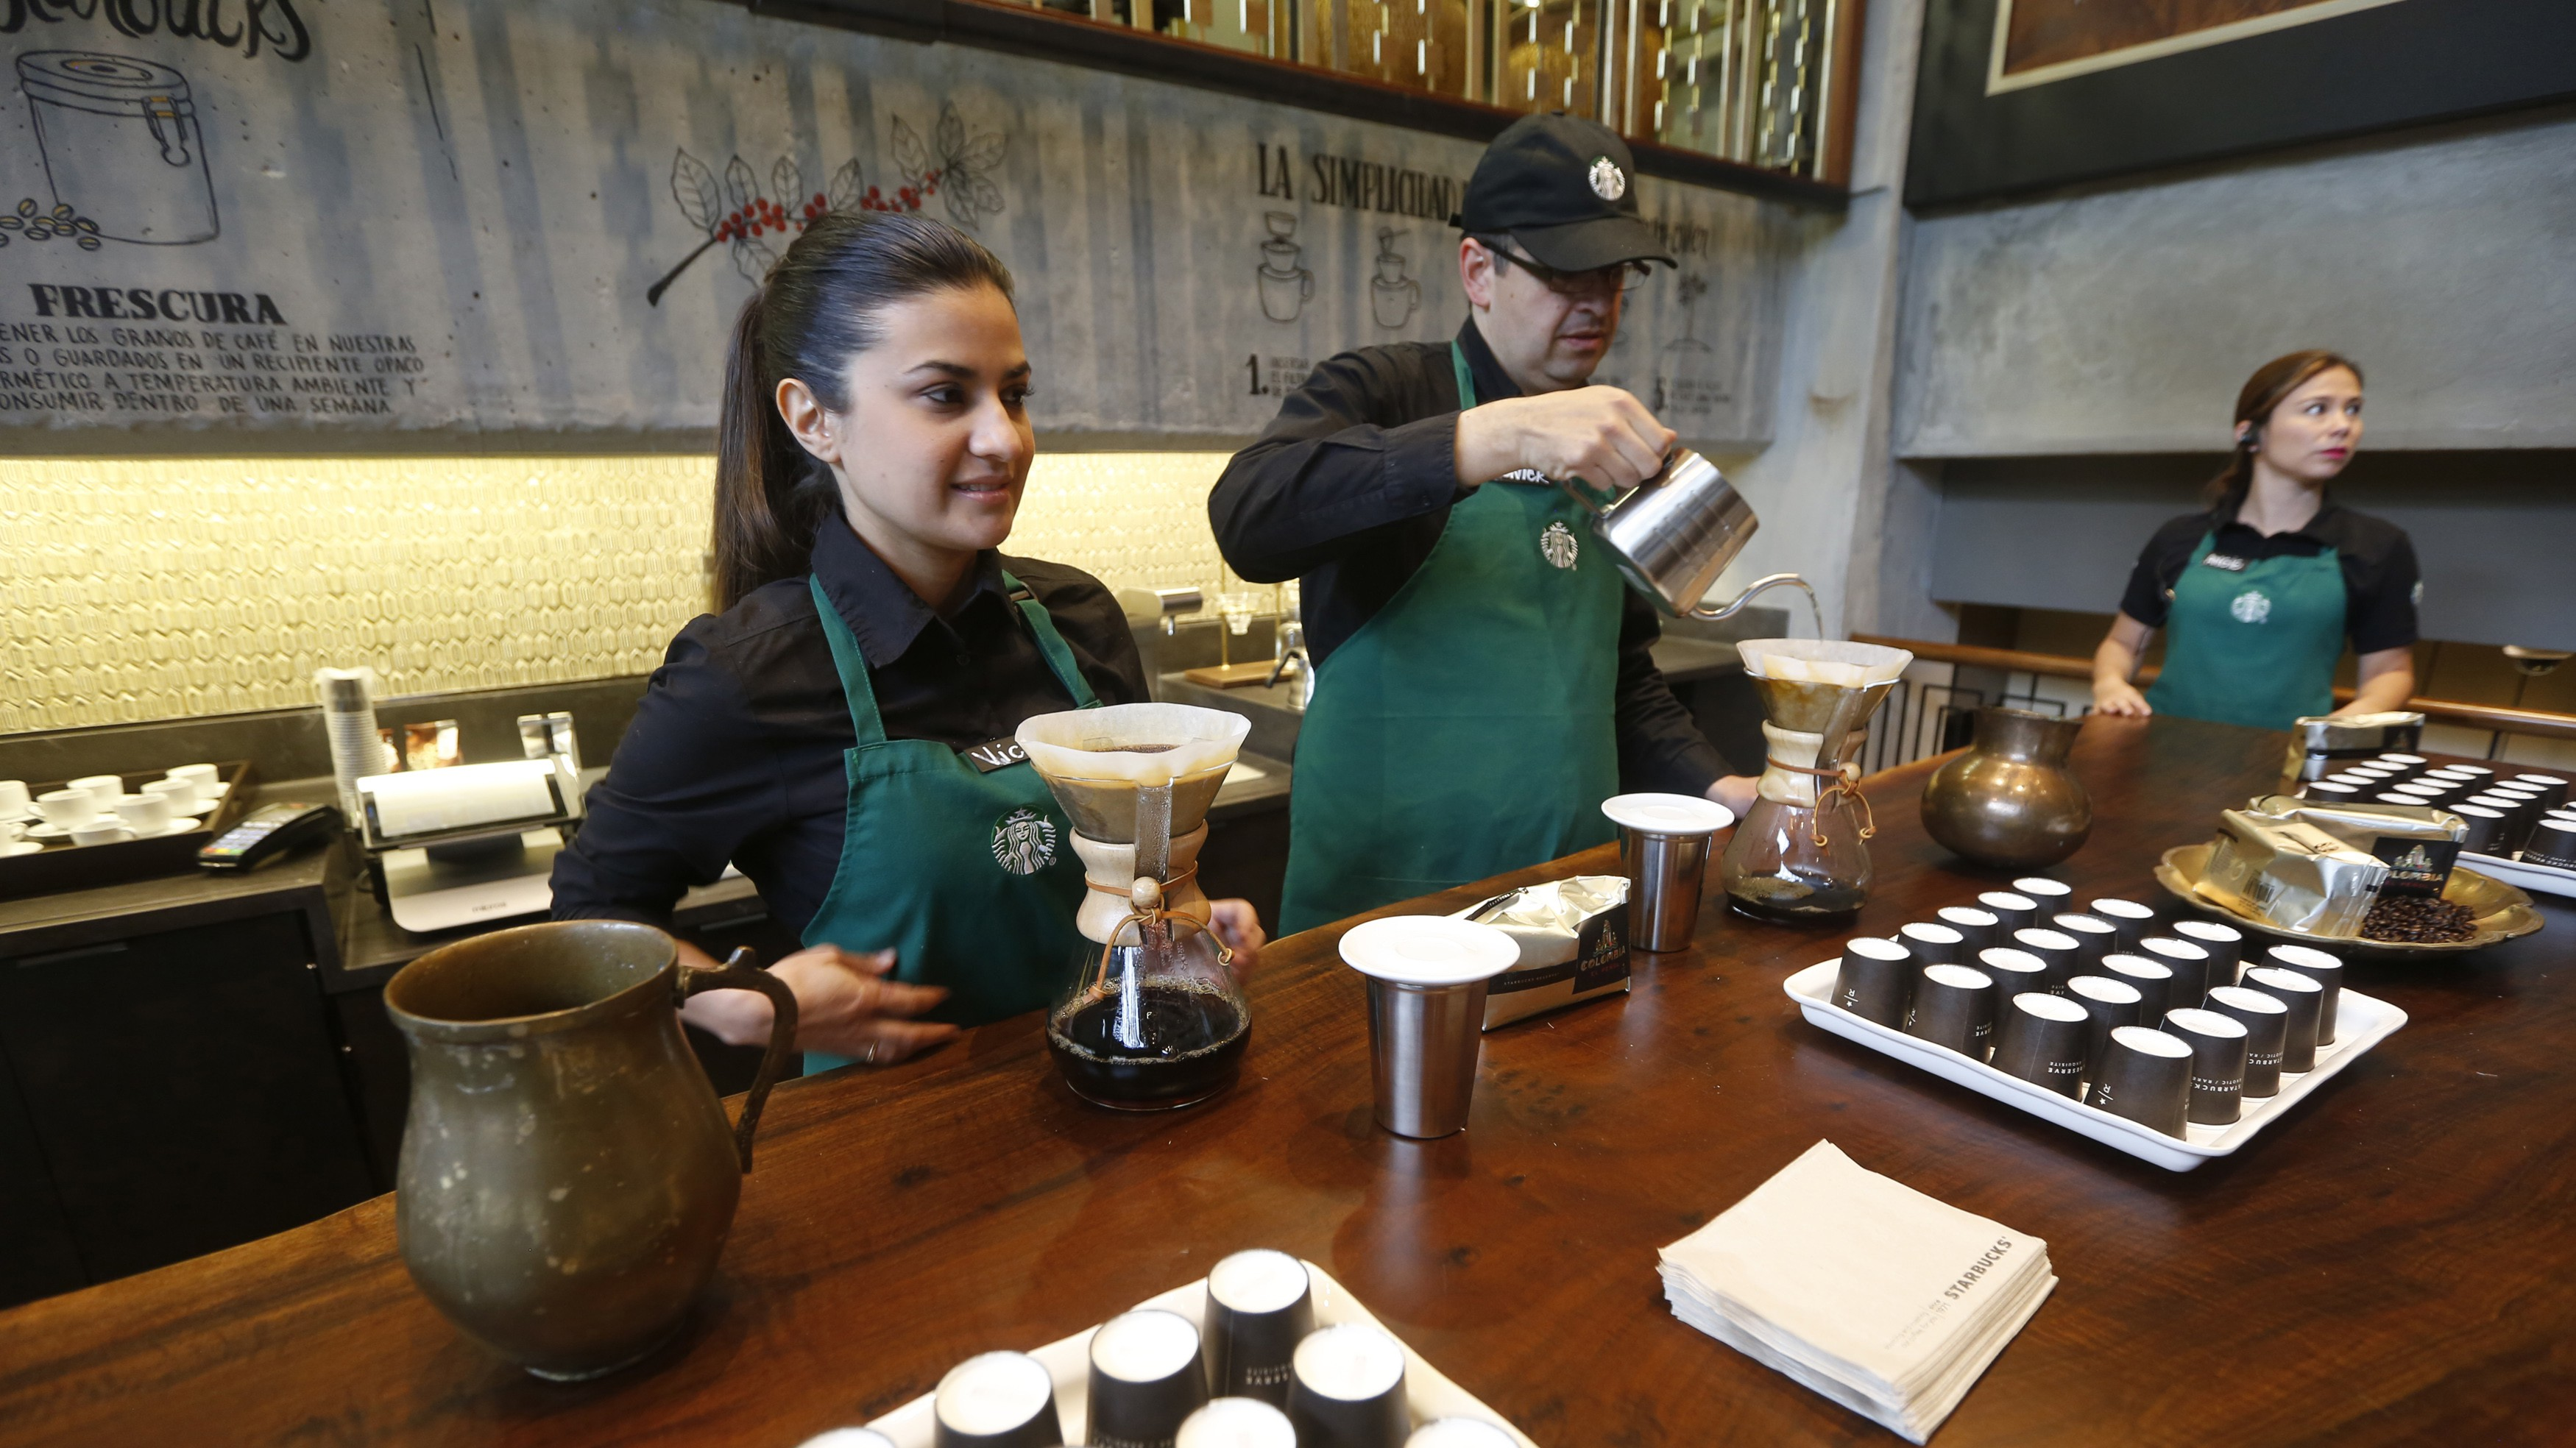 Workers prepare coffee during the inauguration of Starbuck's first Colombian store at 93 park in Bogota July 16, 2014. Starbucks Corp opened its first shop in Colombia on Wednesday, 43 years after the world's biggest coffee chain first started buying beans from the country famous for its premium arabica coffee named after fictional coffee farmer Juan Valdez.